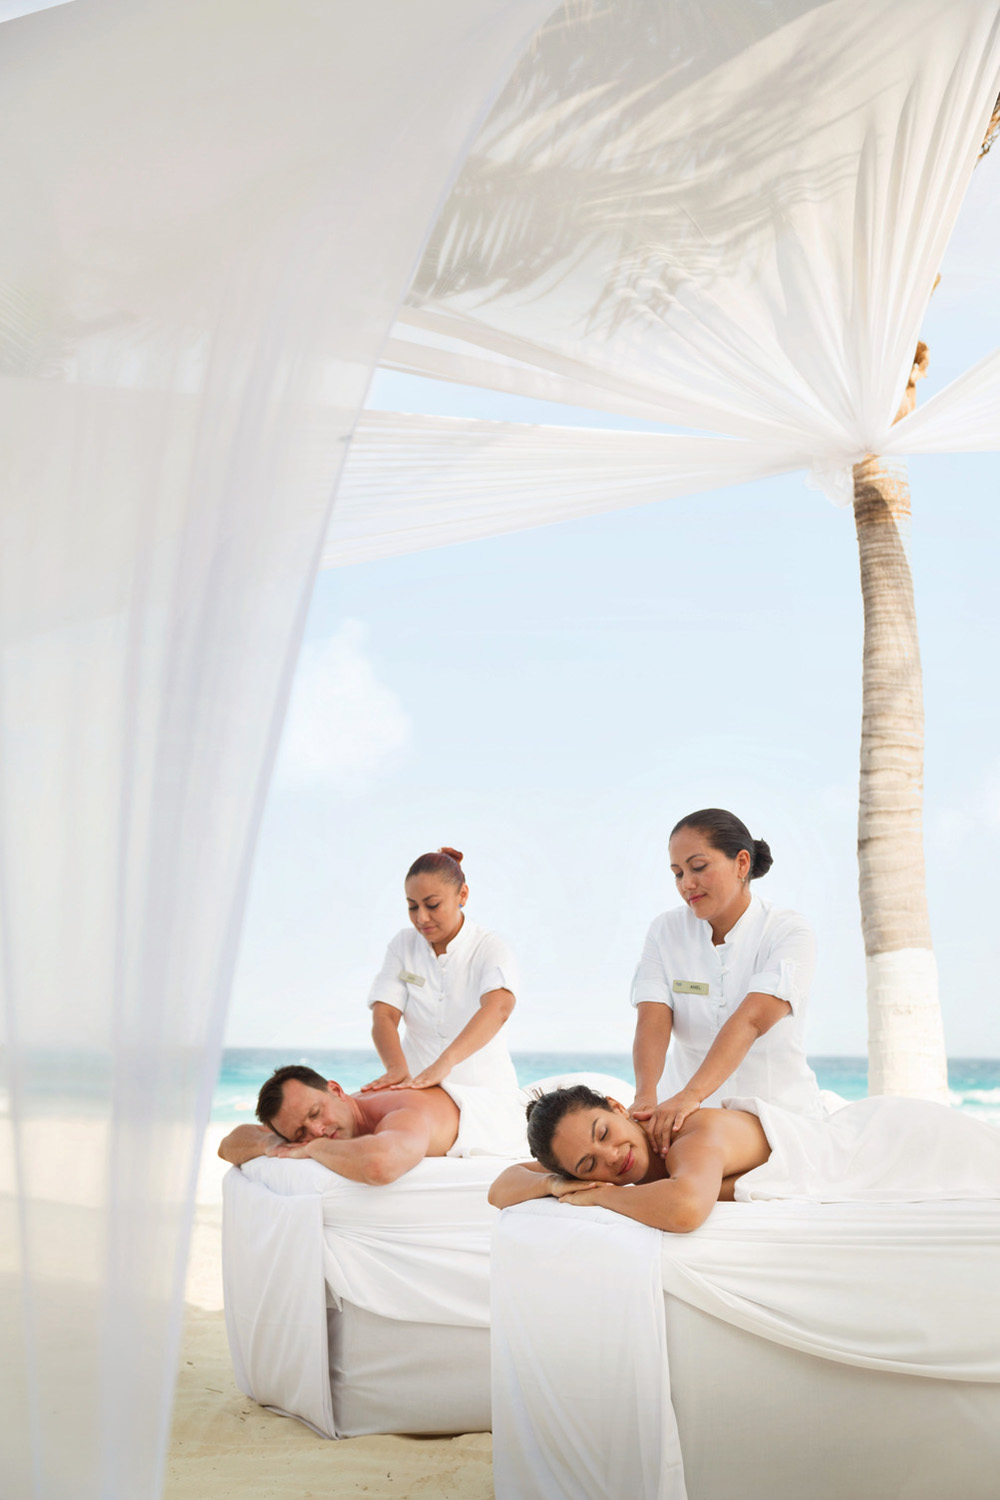 Couples massages can be enjoyed side-by-side on the beach.